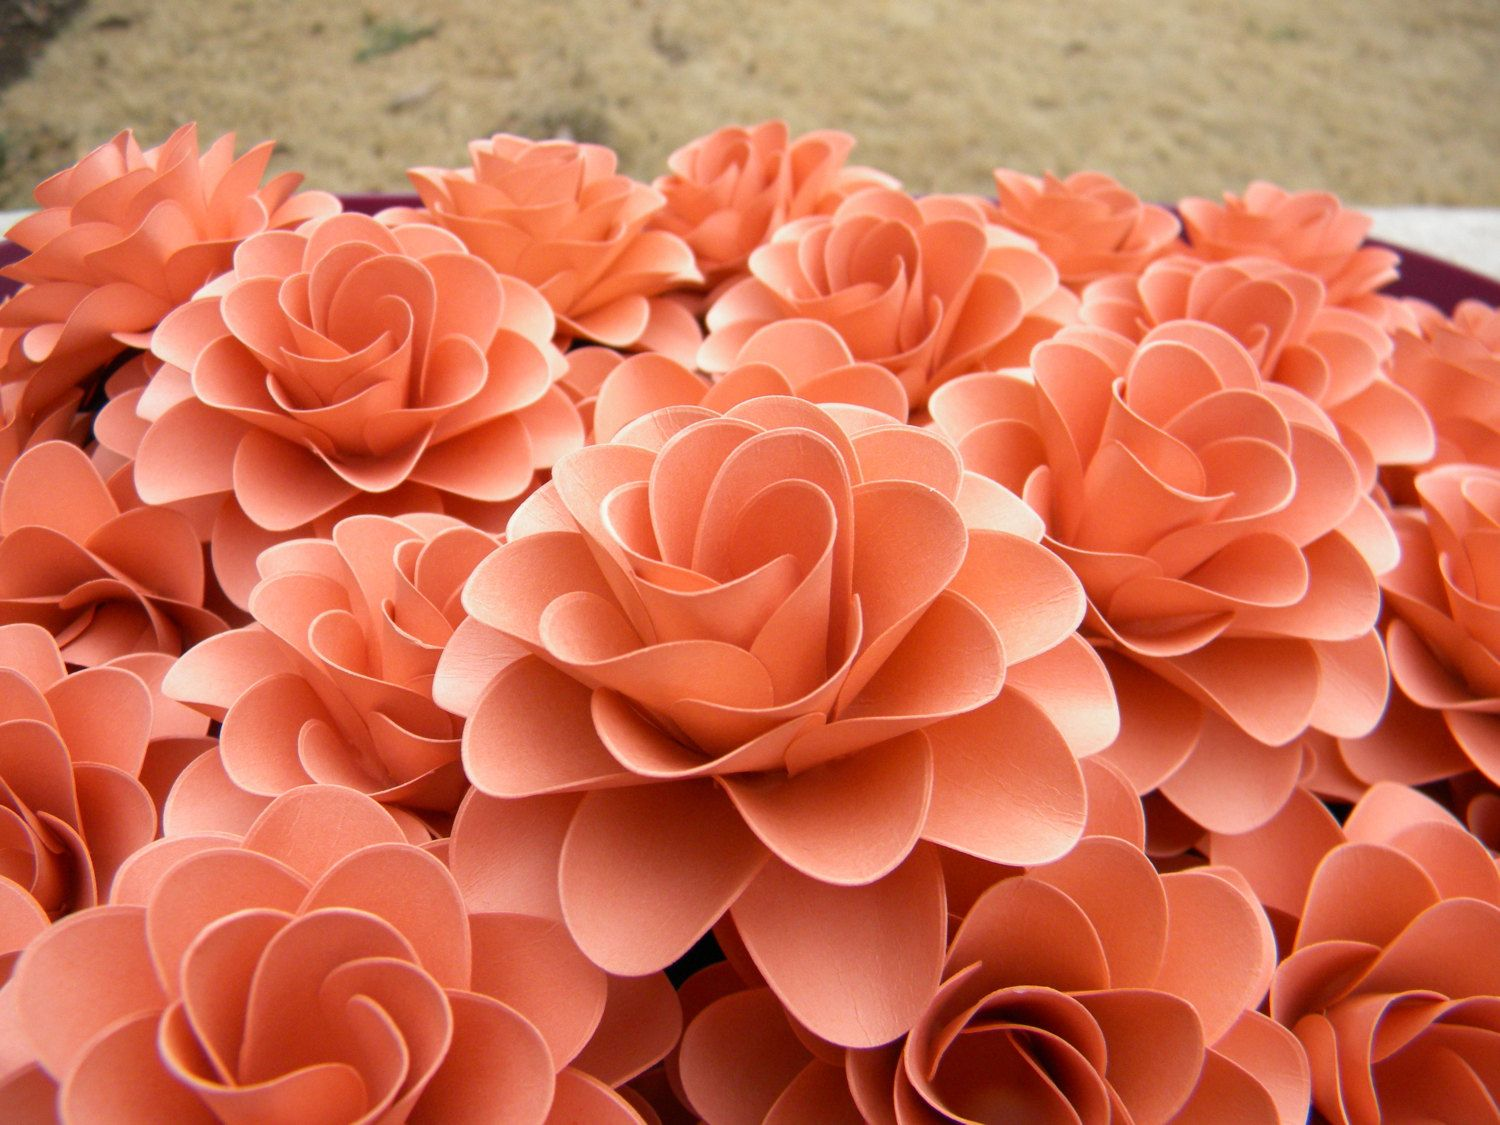 Salmon-Colored Roses | Paper Flowers Light Coral or Salmon Color ...